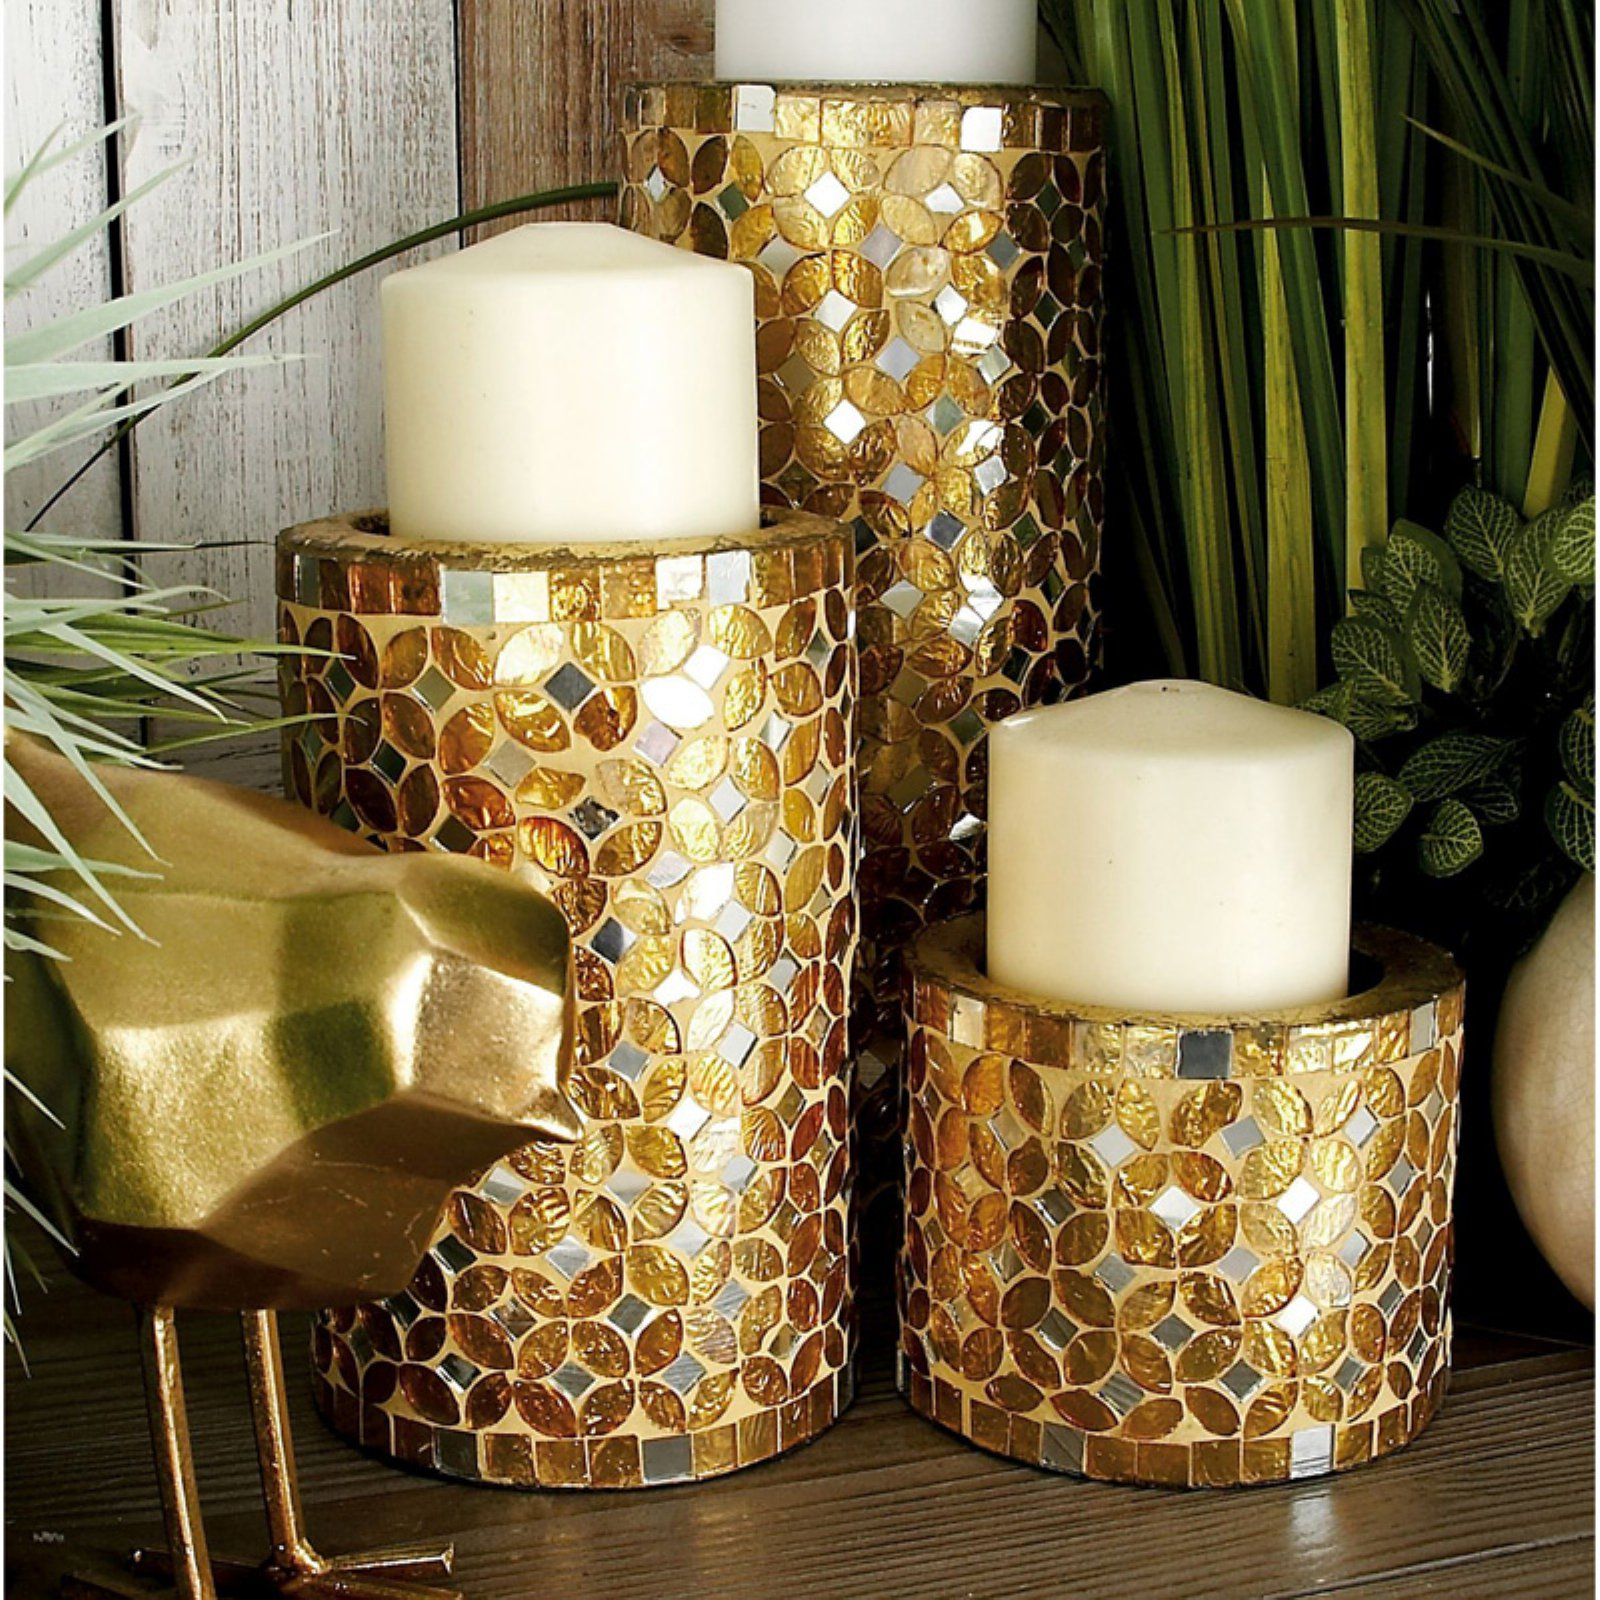 DecMode Mosaic Metal Candle Holder Set of 3 by DecoMode Collection